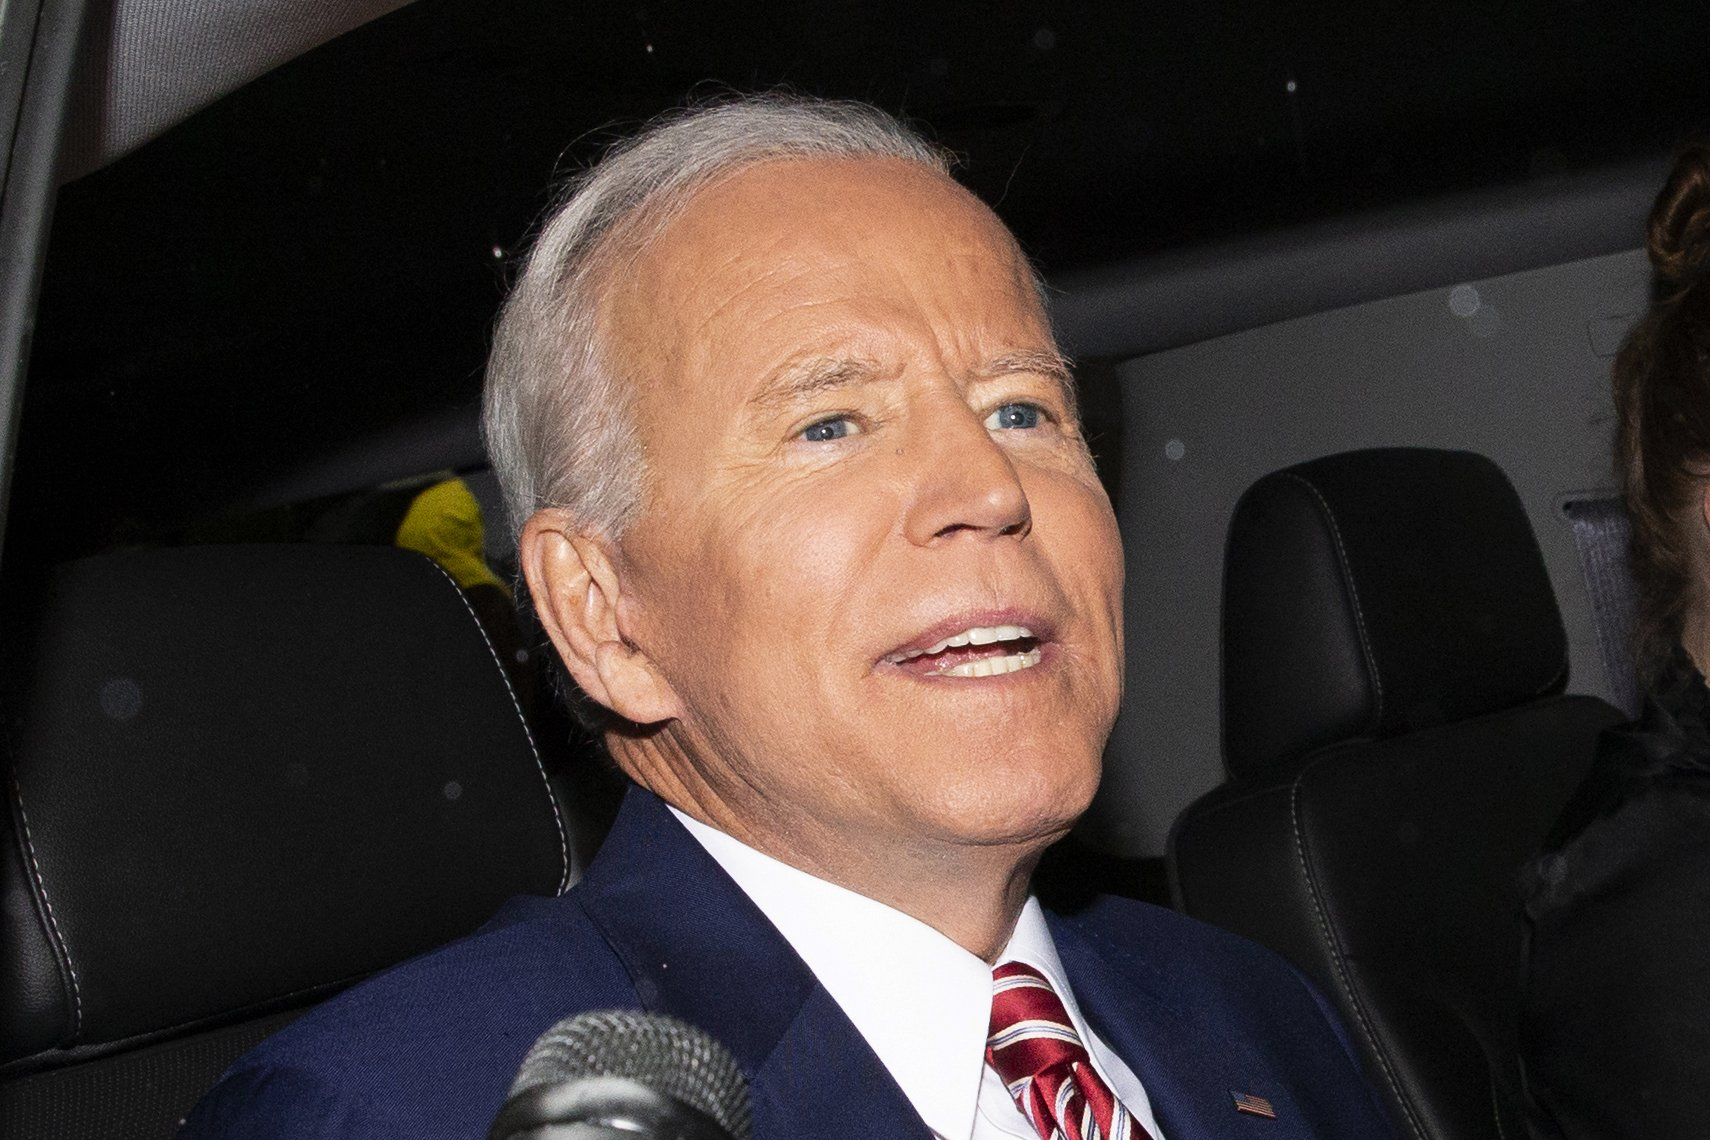 Joe Biden April 26